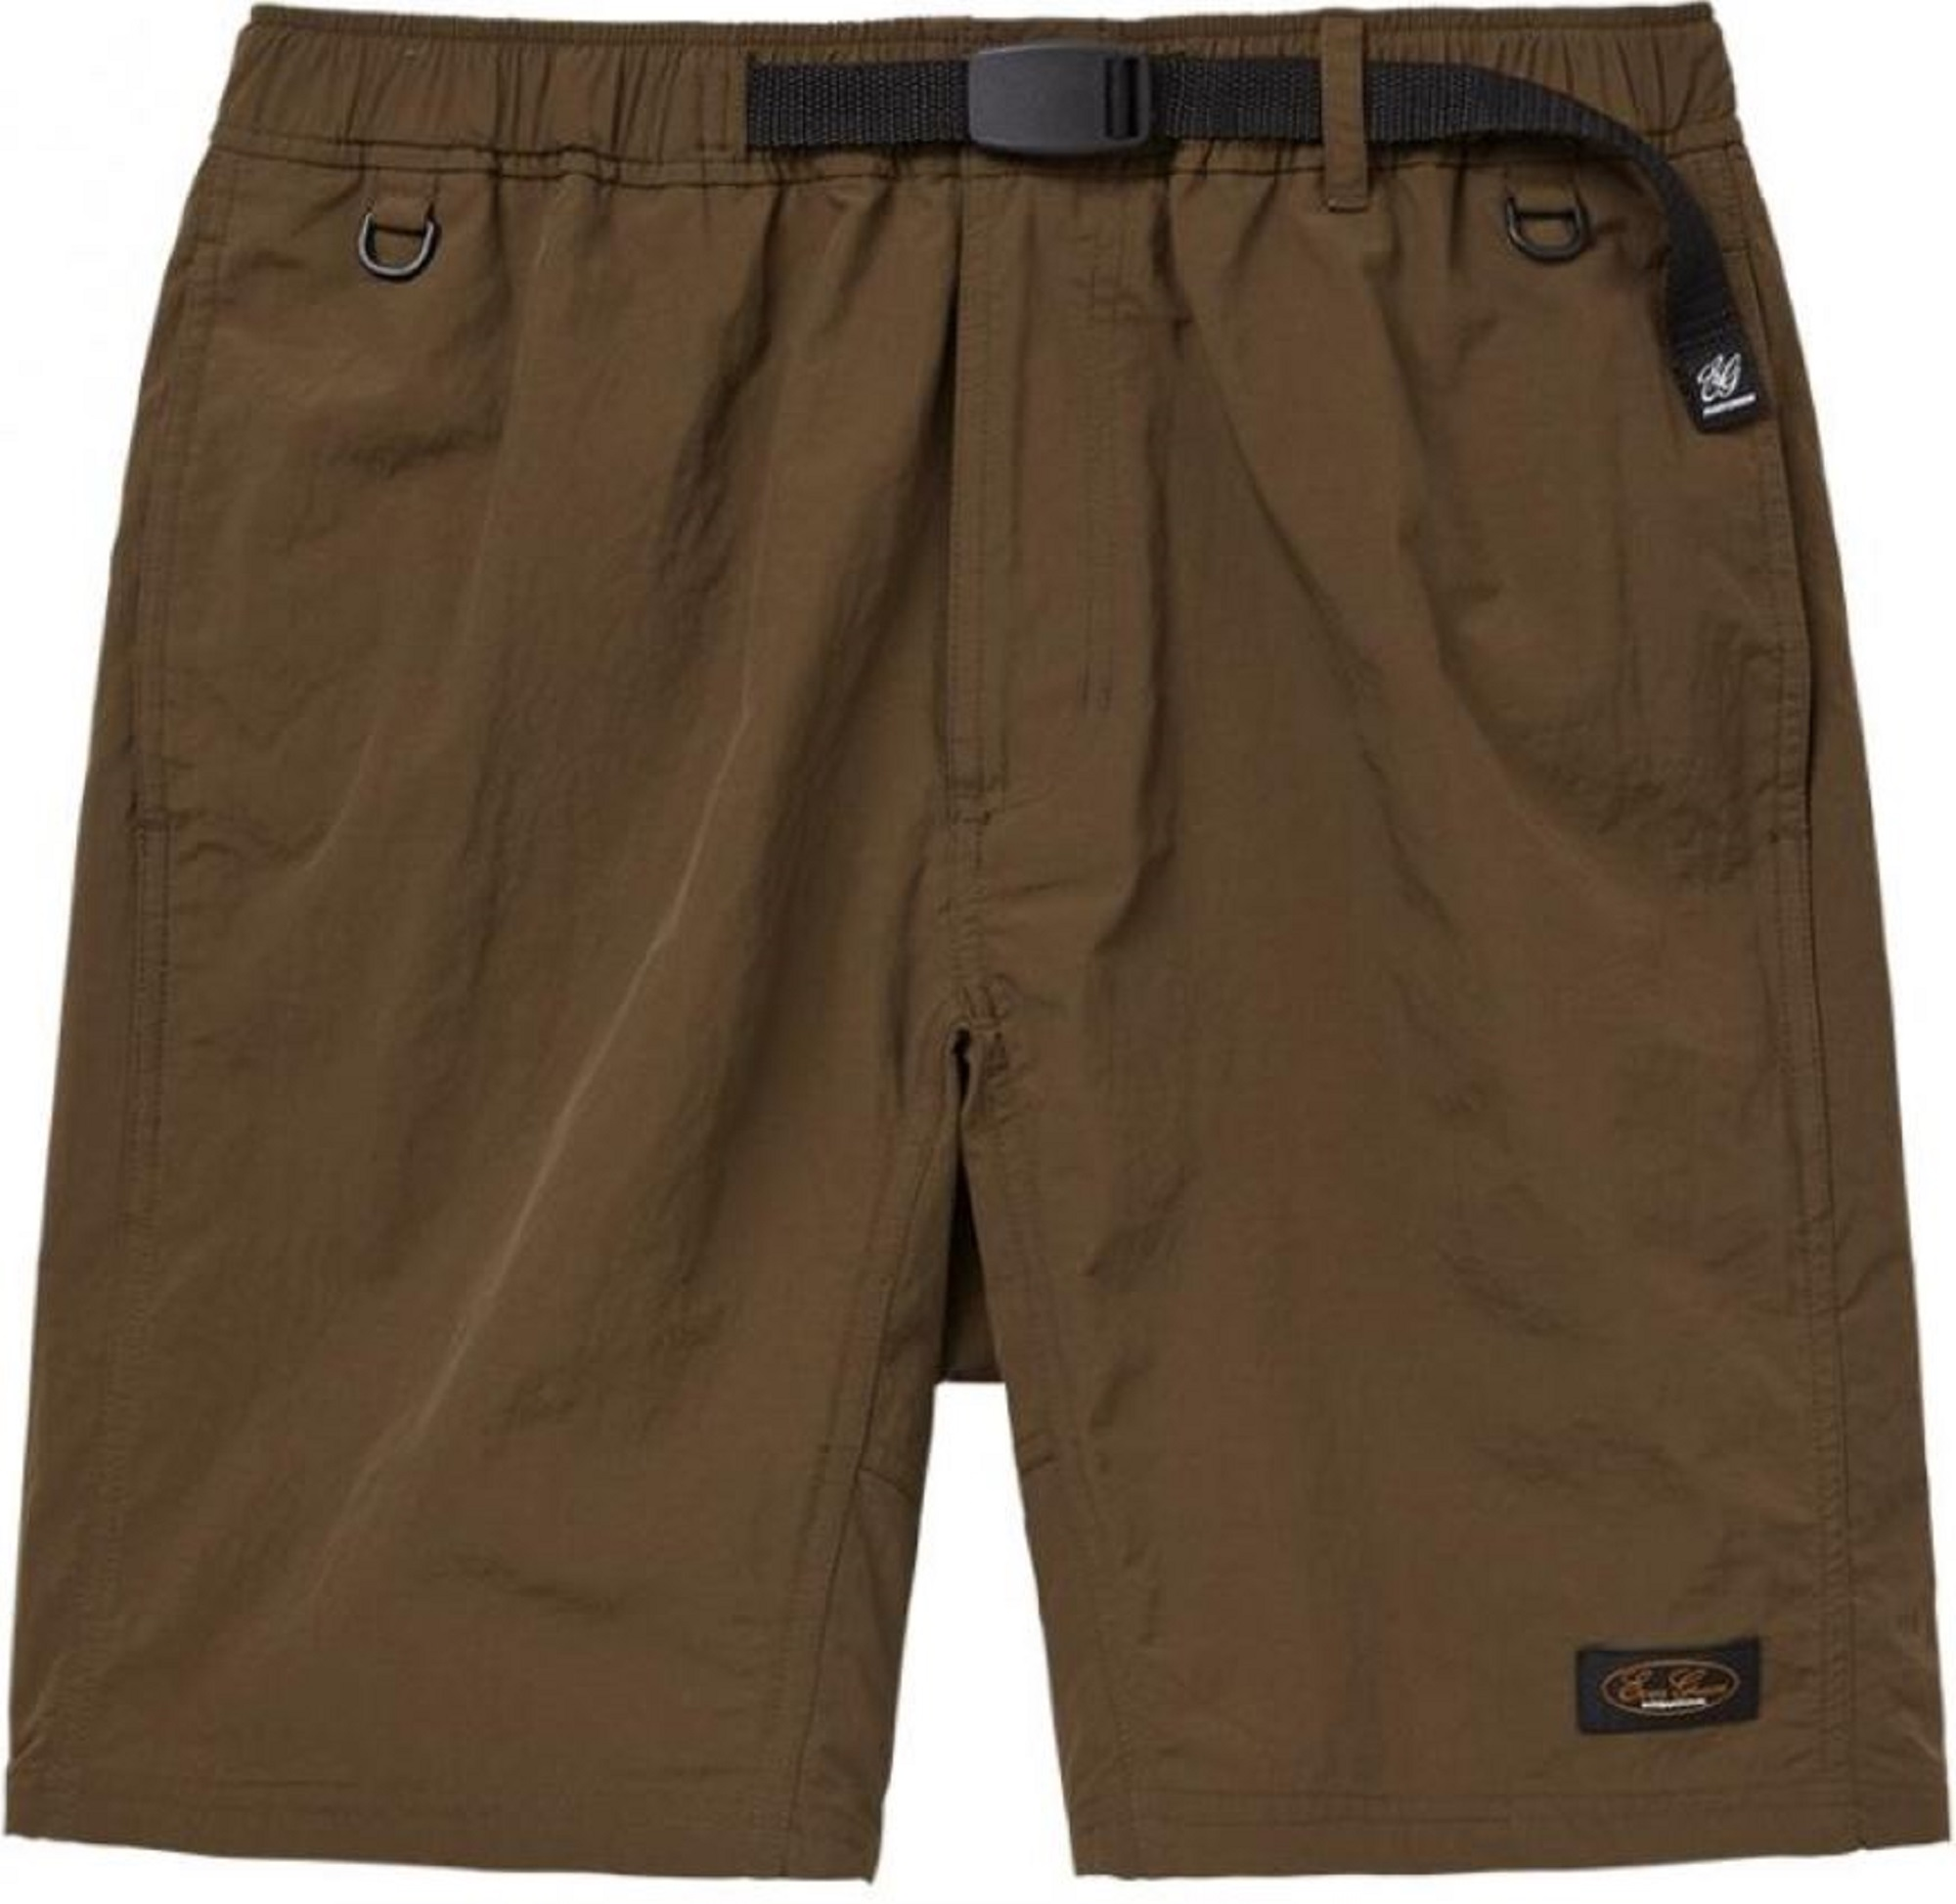 Evergreen Pants Shorts Dry Size XL Olive 83-89 cm 33-35 Inches (0761)